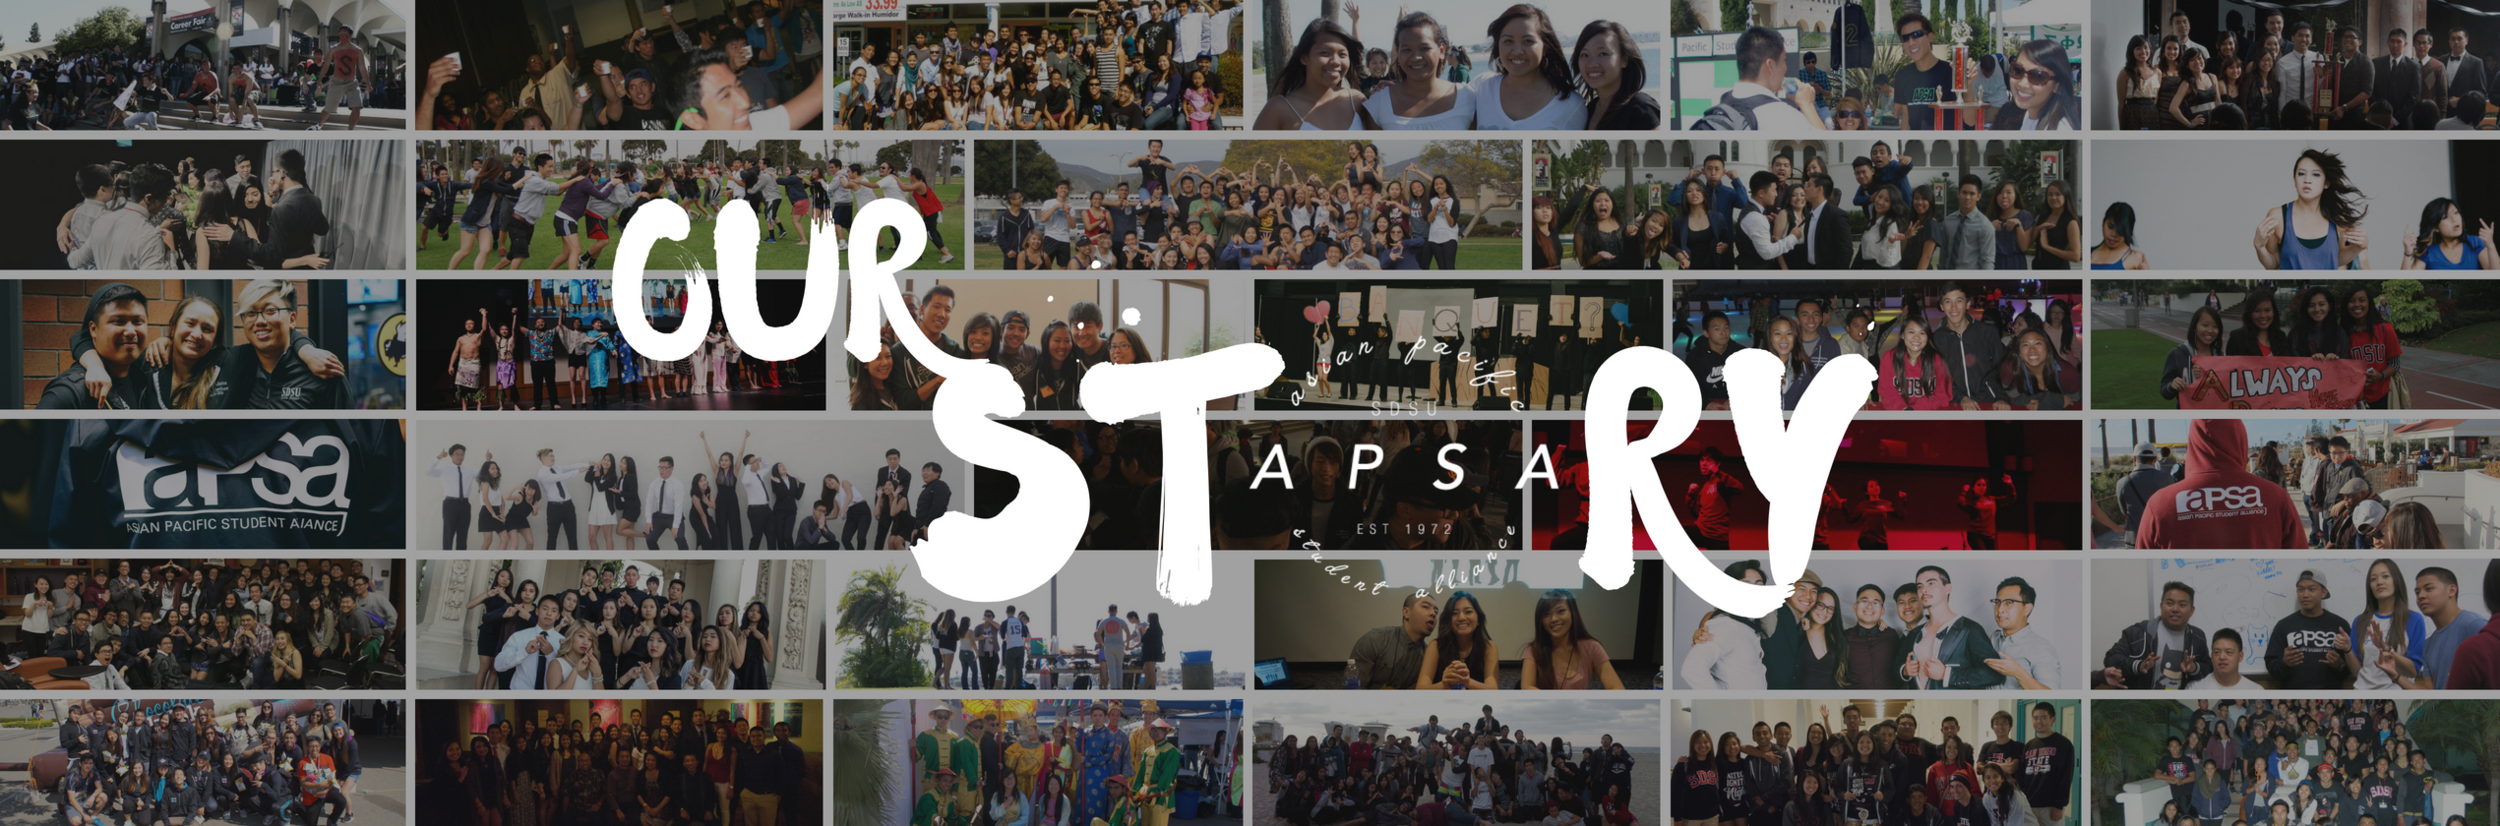 Our Story Header Website compatible copy 4.png